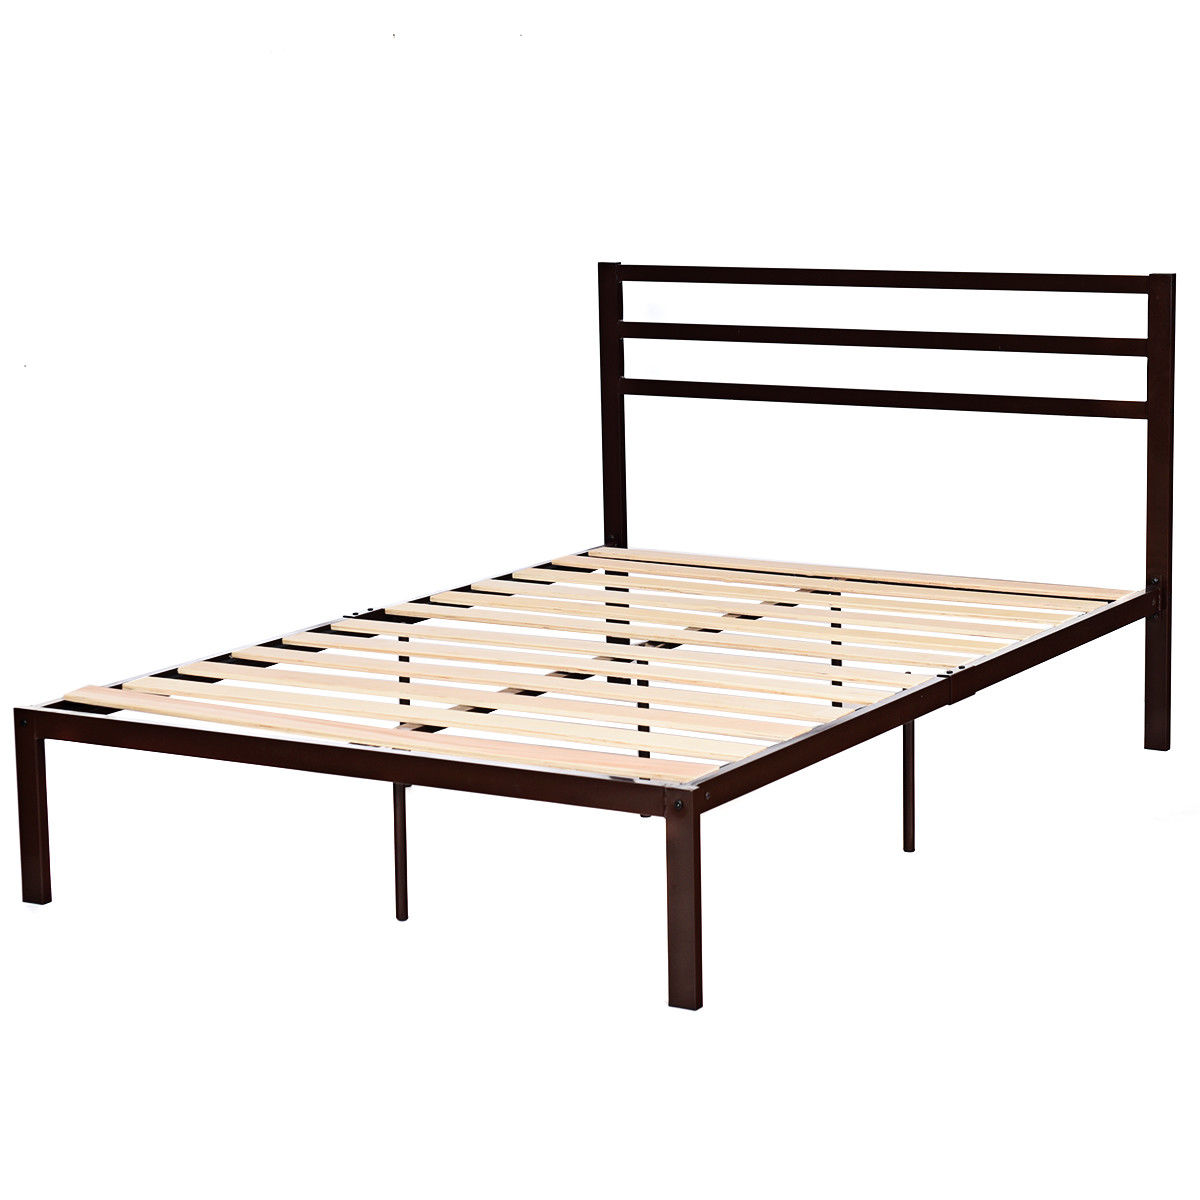 "Costway 14"" Full Size Metal Bed Frame Platform Wooden Slat Support Headboard Chocolate"